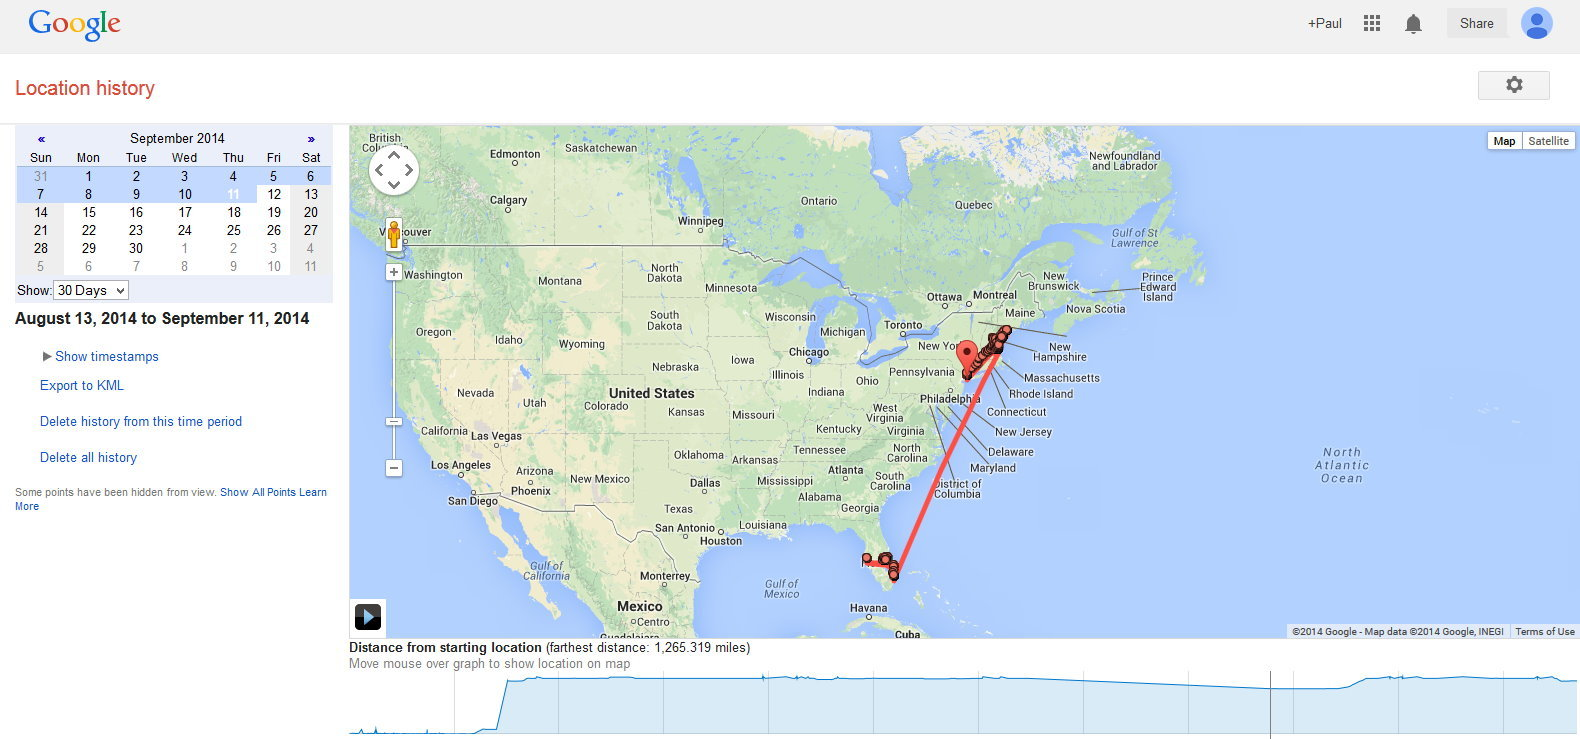 I decided to test the Google Location History feature over the course of a month. It did correctly identify that I spent time in Florida then flew to the North East.